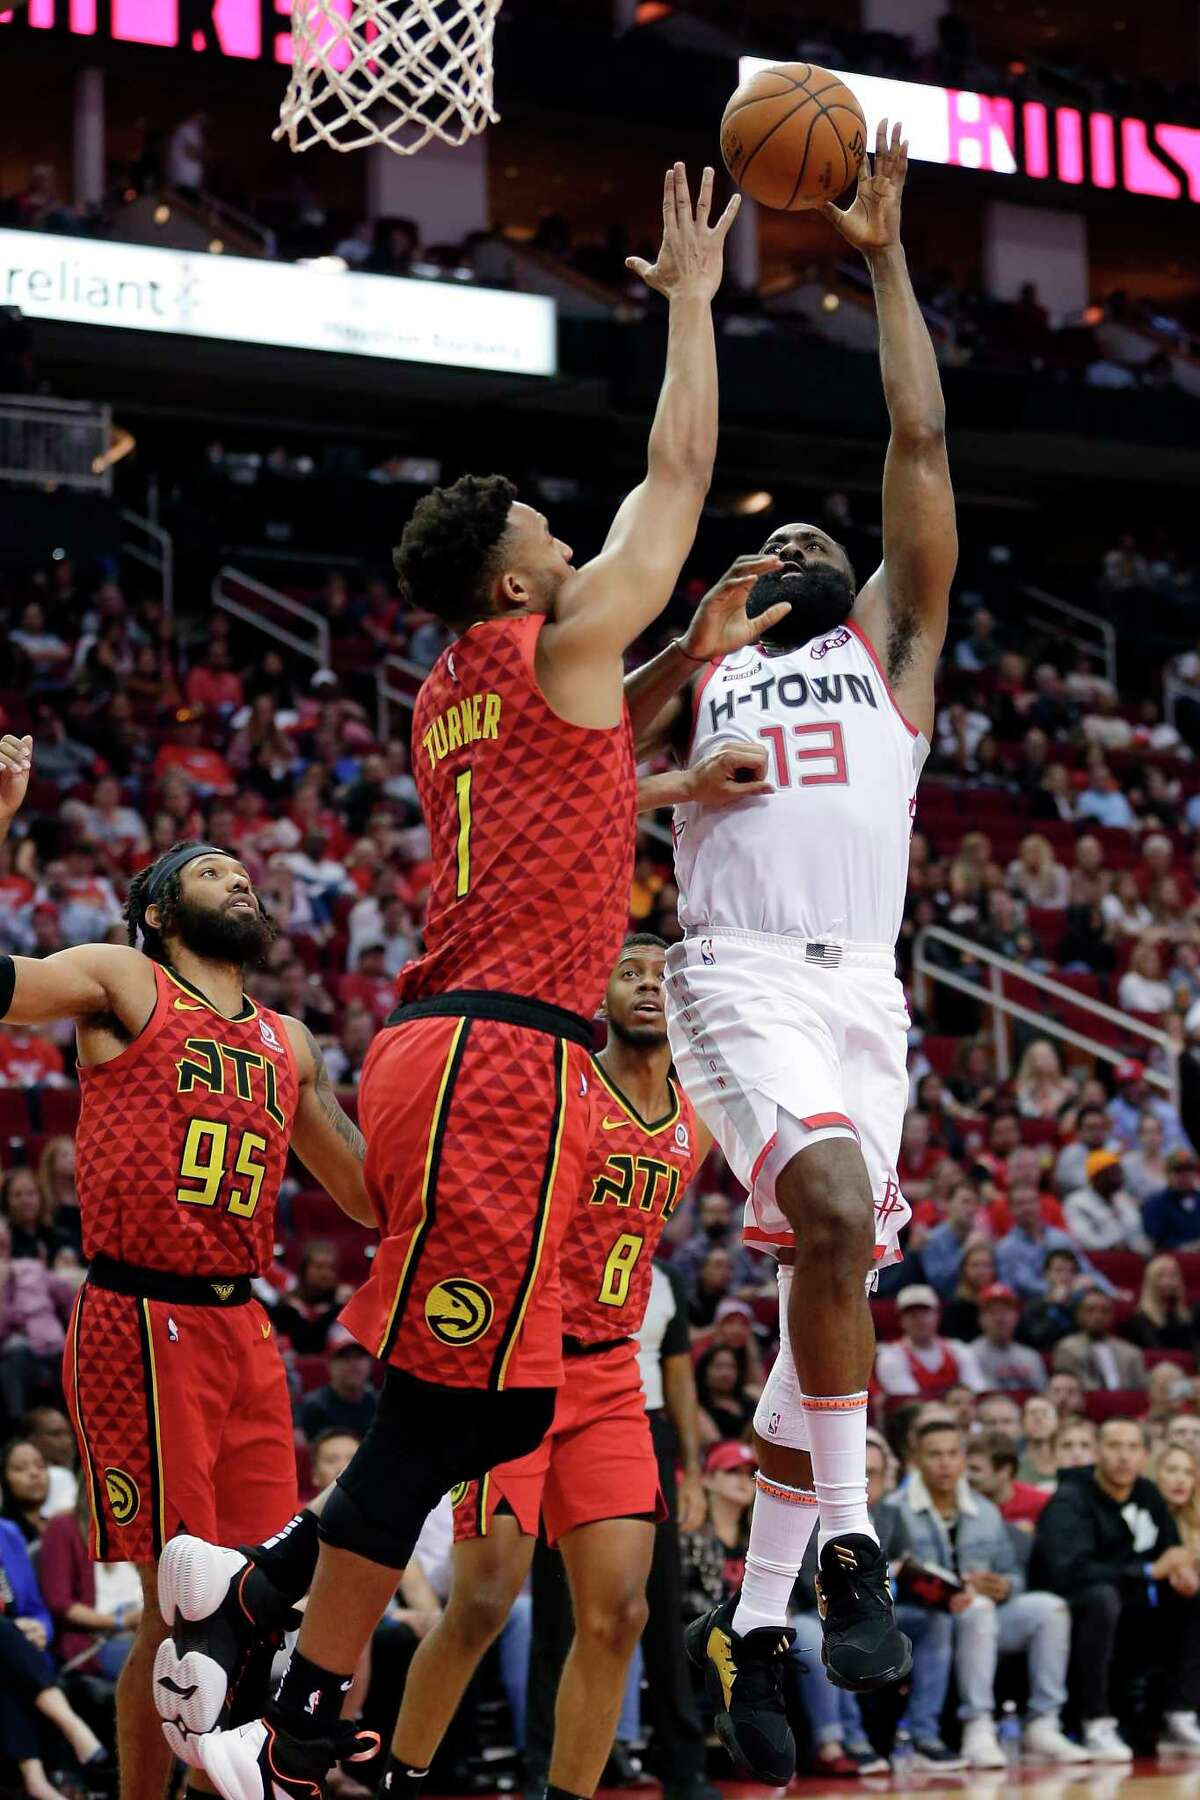 Houston Rockets guard James Harden (13) shoots against Atlanta Hawks guard Evan Turner (1) as DeAndre' Bembry (95) and Tyrone Wallace (8) look on during the second half of an NBA basketball game, Saturday, Nov. 30, 2019, in Houston. (AP Photo/Michael Wyke)